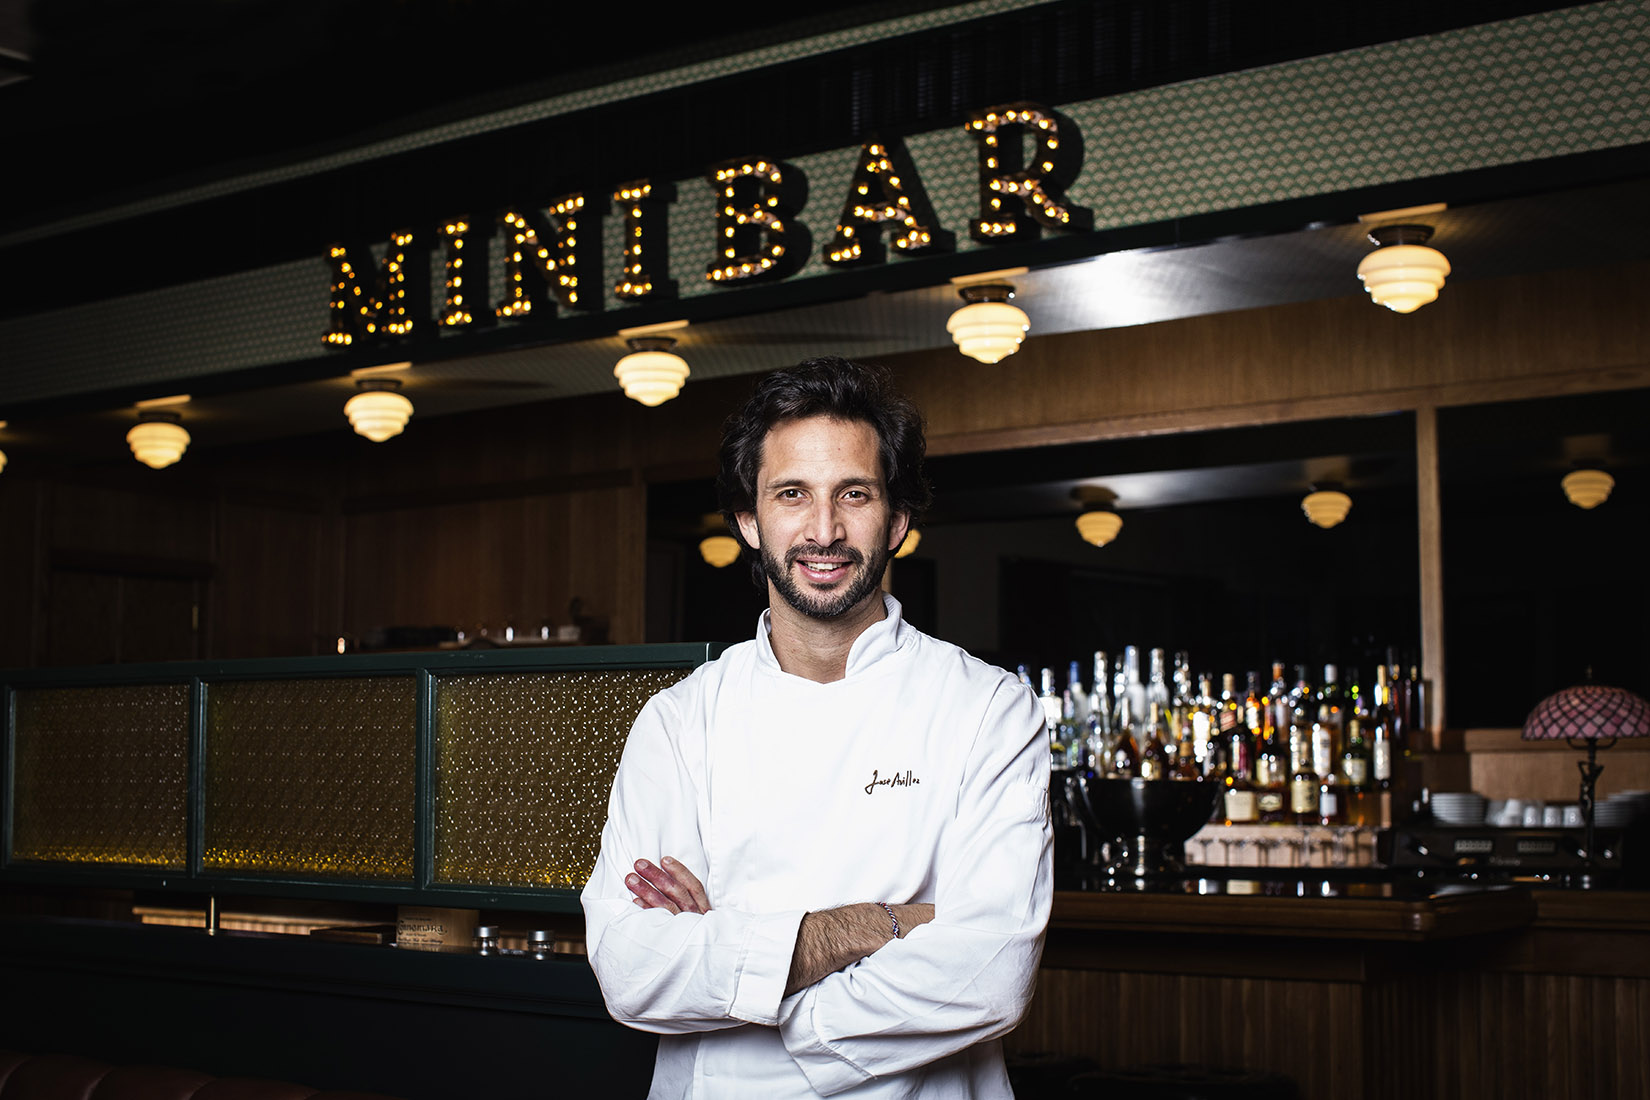 José Avillez – Mini Bar